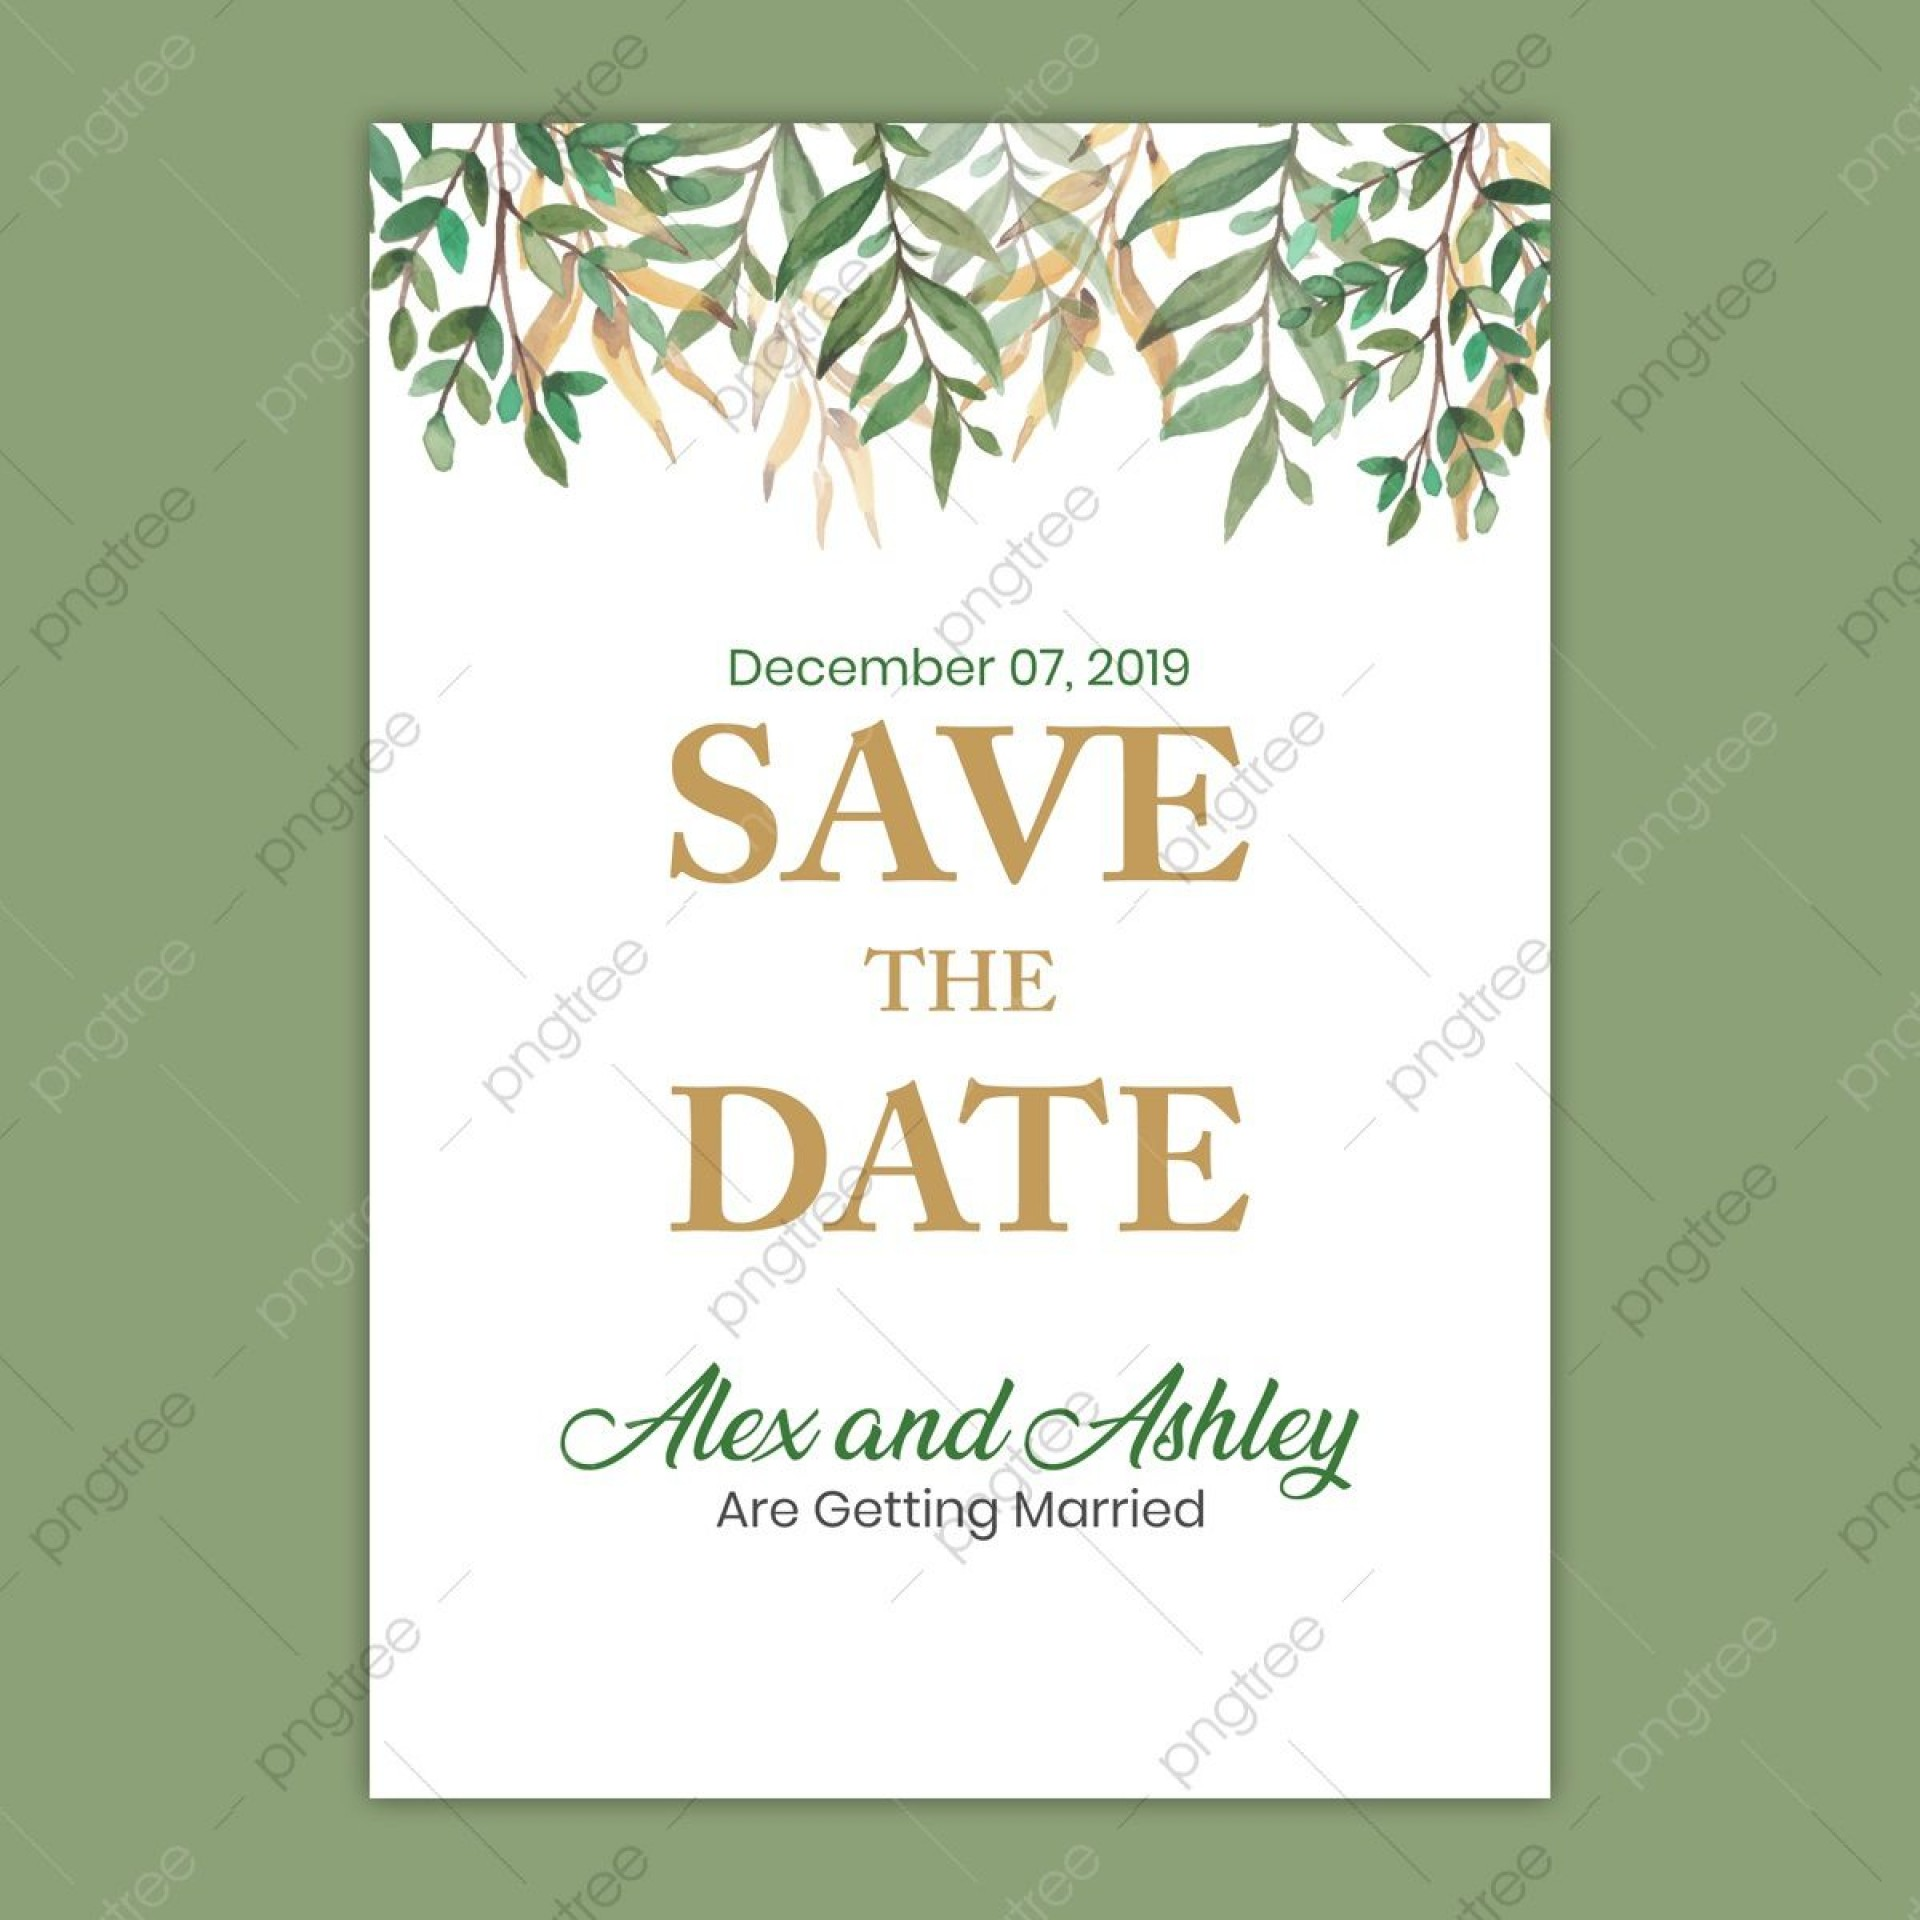 005 Unusual Save The Date Flyer Template Picture  Word Event1920